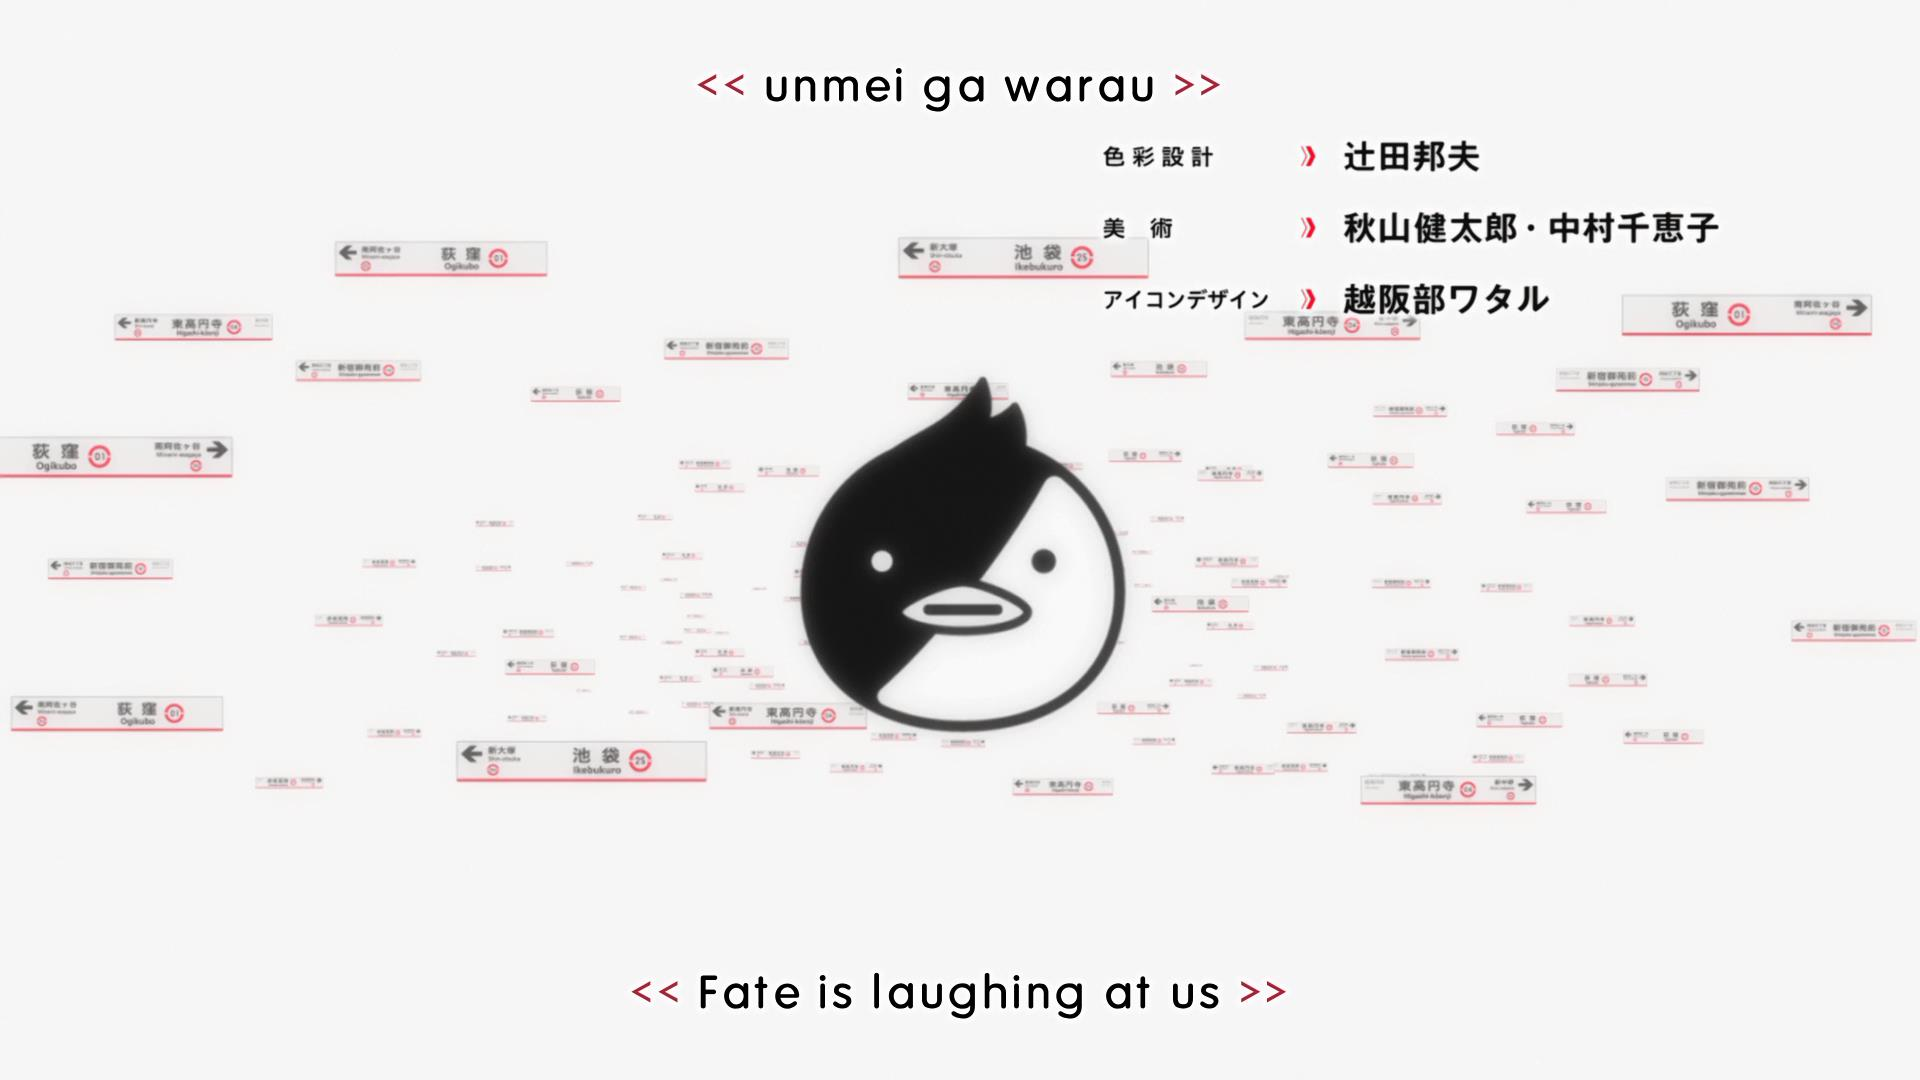 zurako mawaru penguindrum the bell of fate tolls bd p aac ccba mkv snapshot jpg university essay page layout